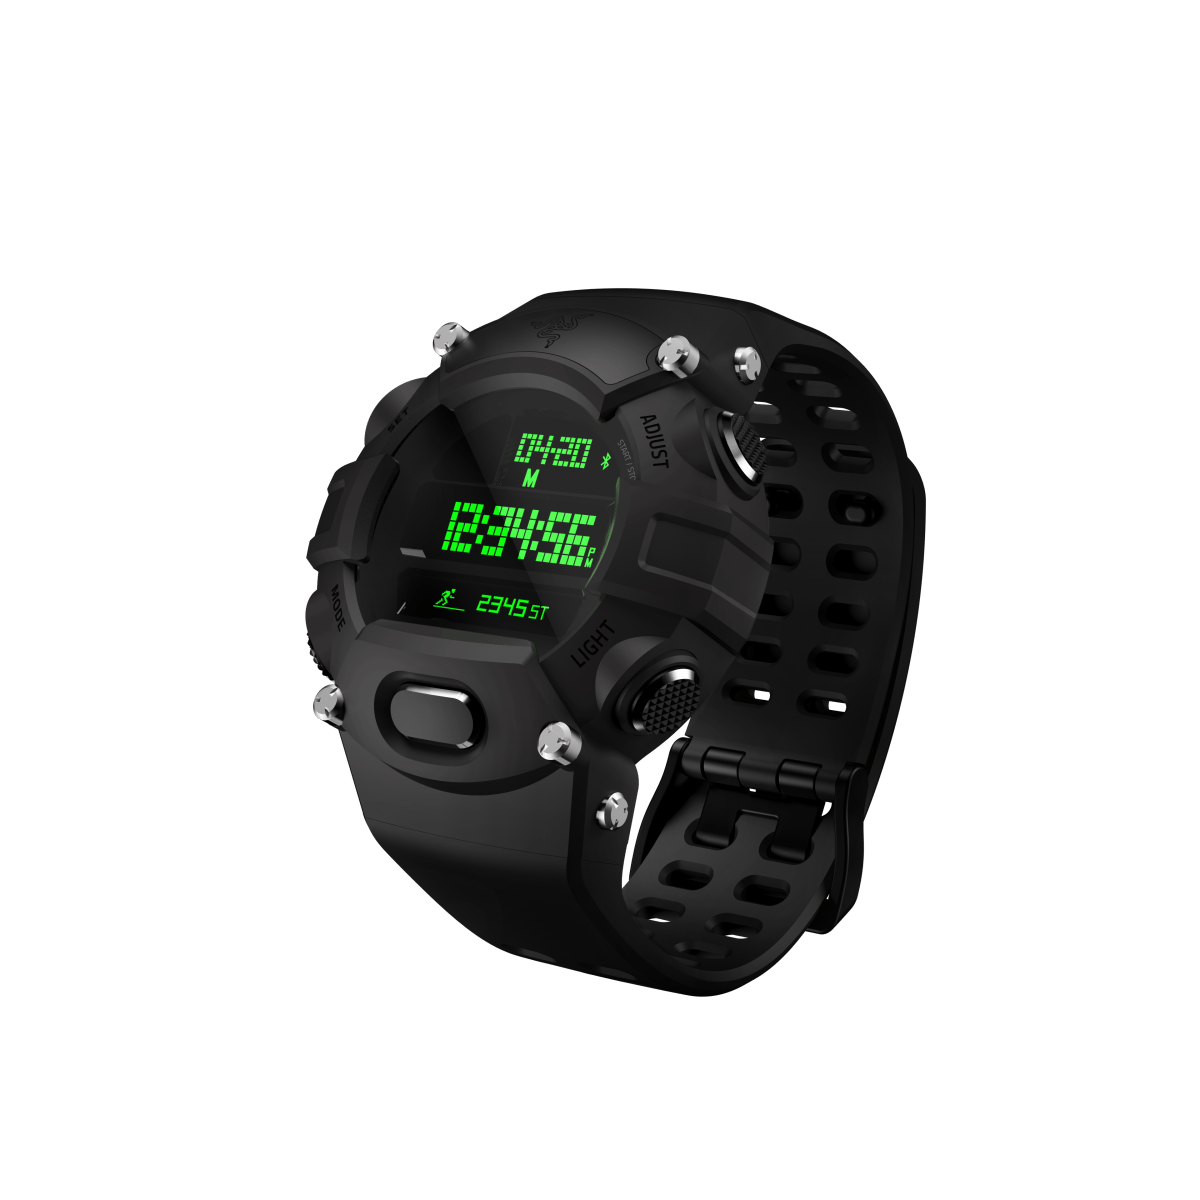 Razer_Watch